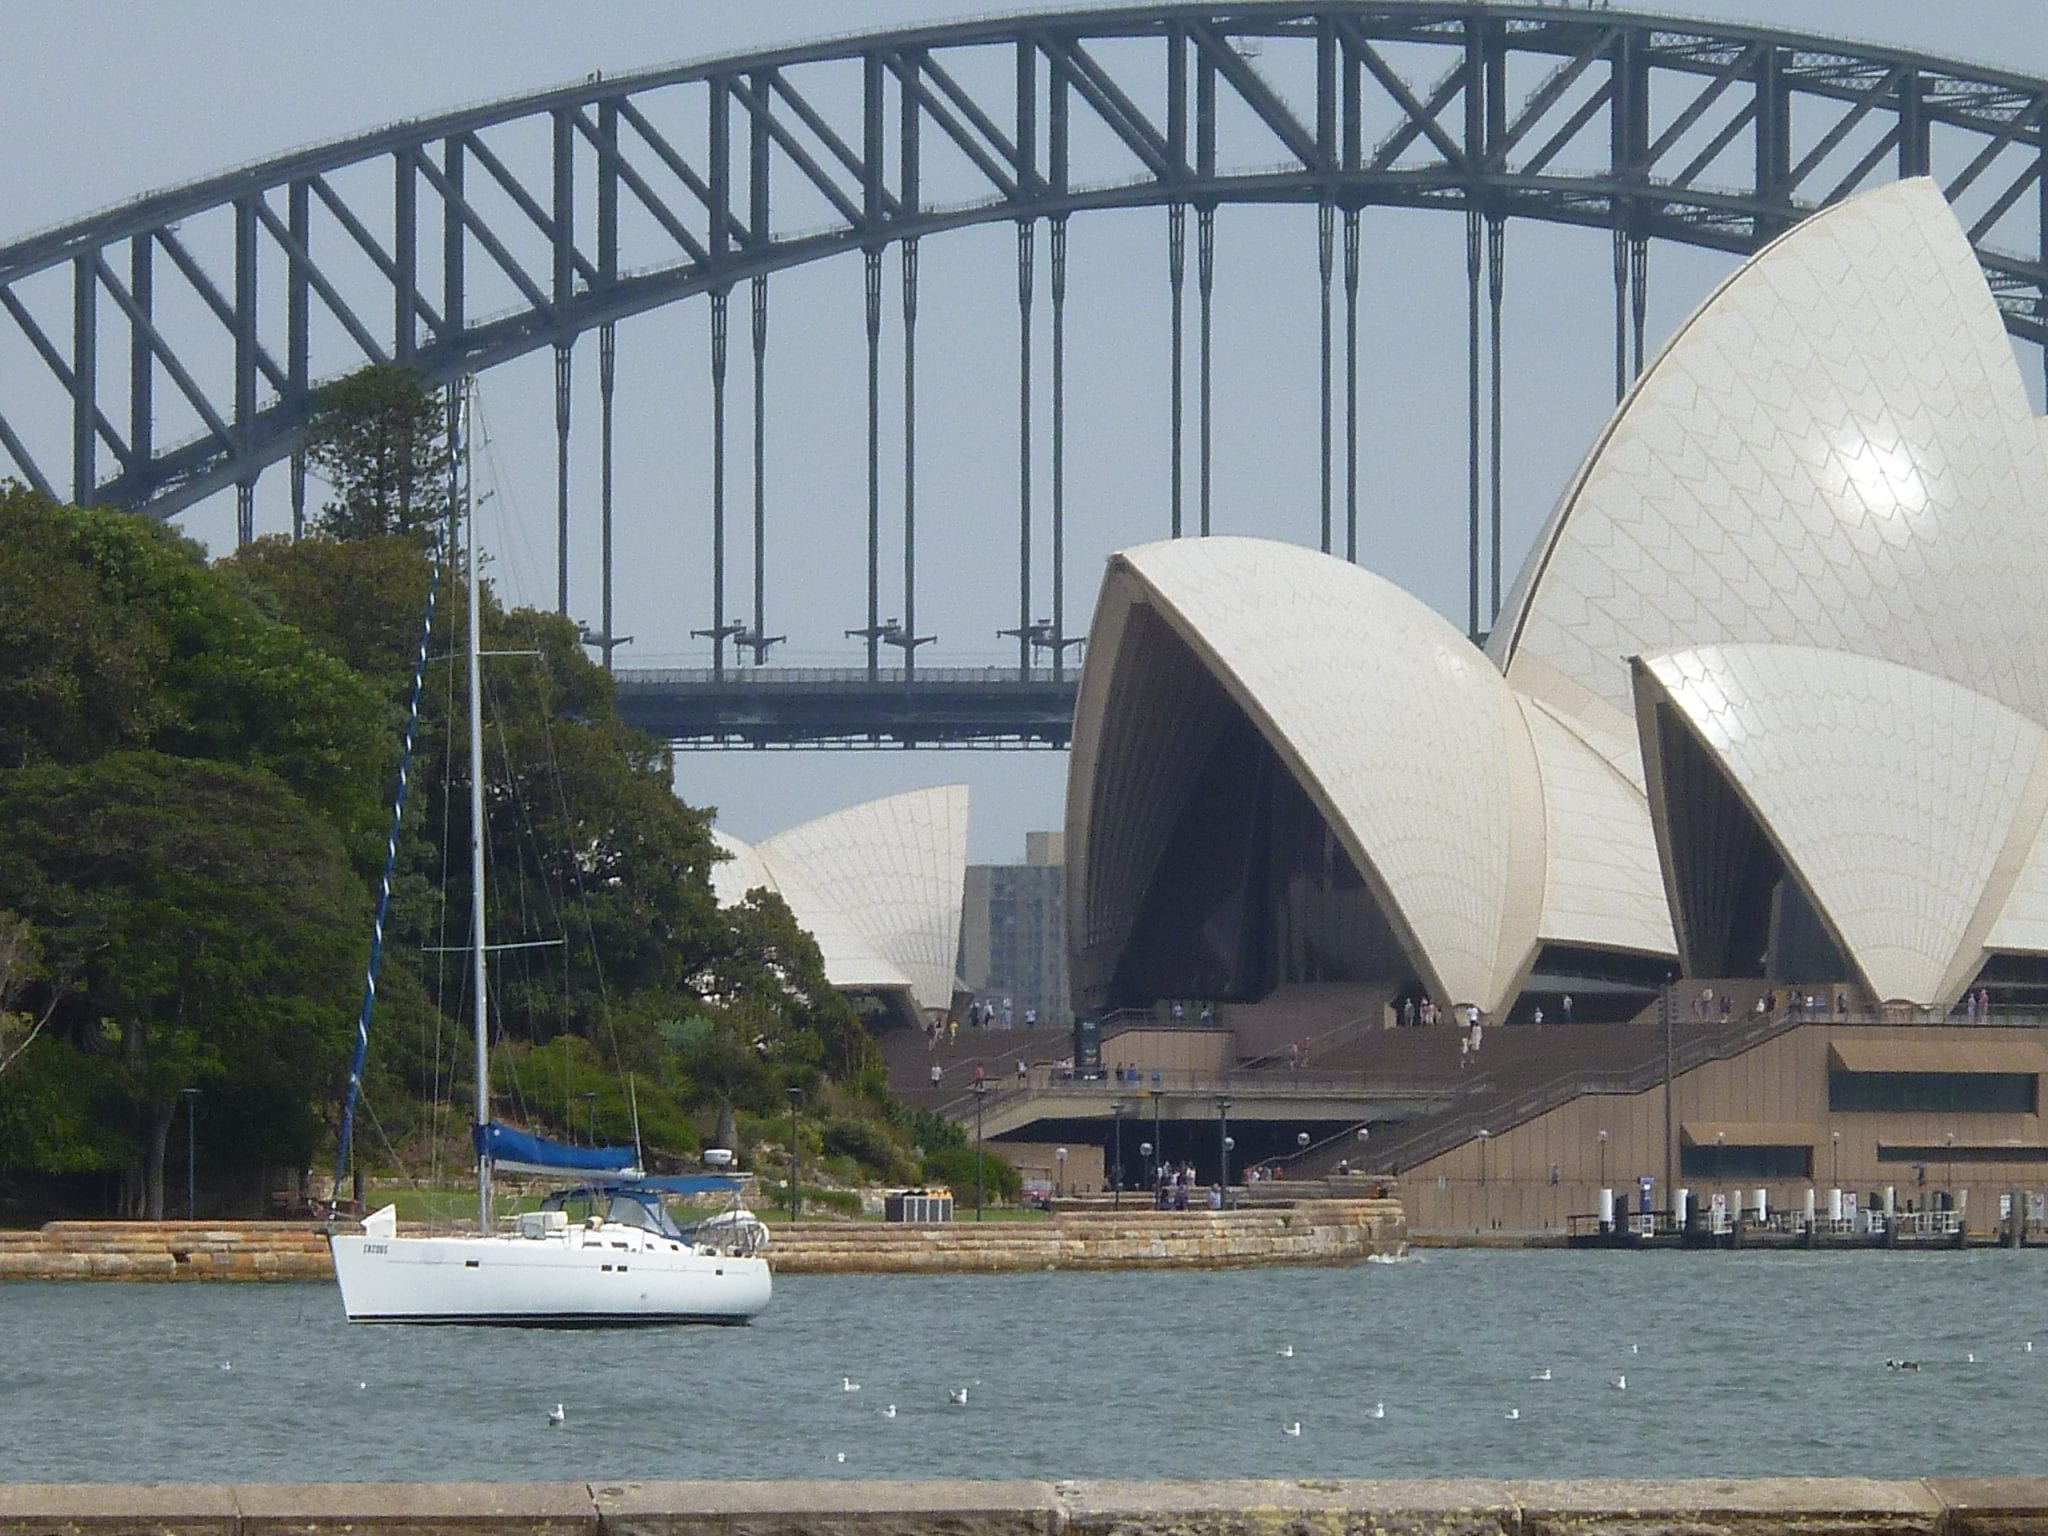 Sydney opera house and bridge-Linda Ballou